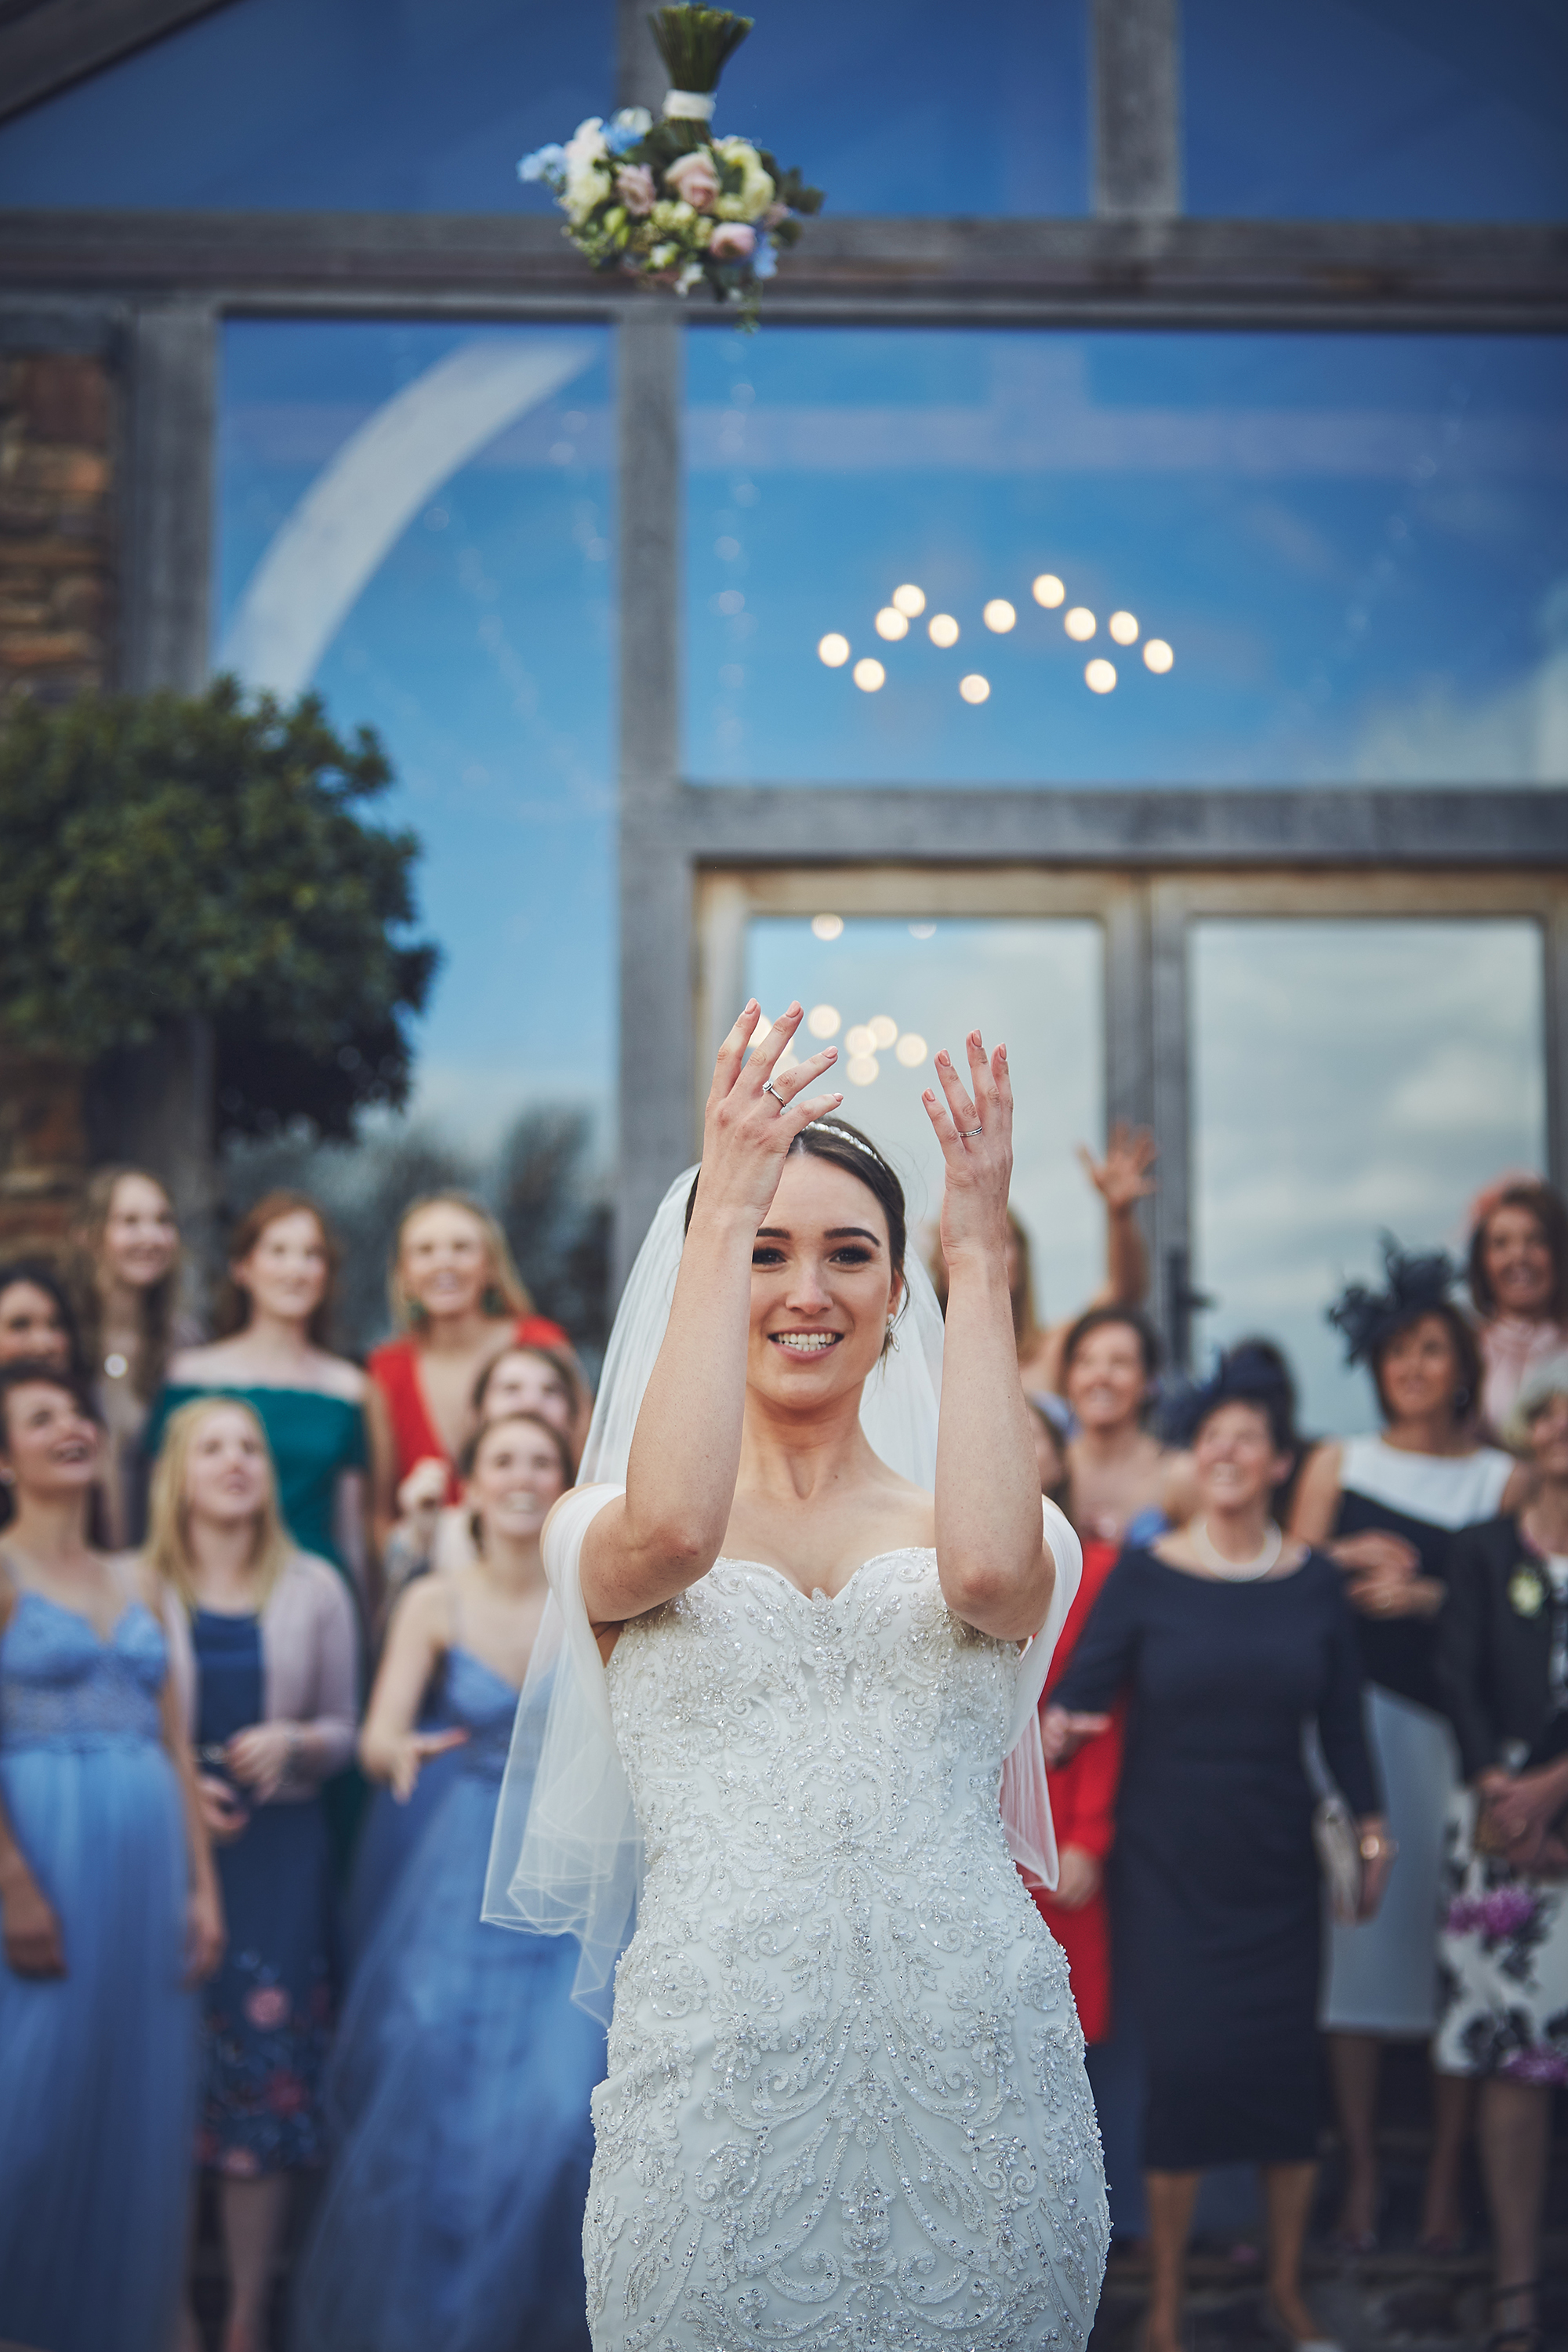 Bride throws bouquet over her head to the bridesmaids and female guests